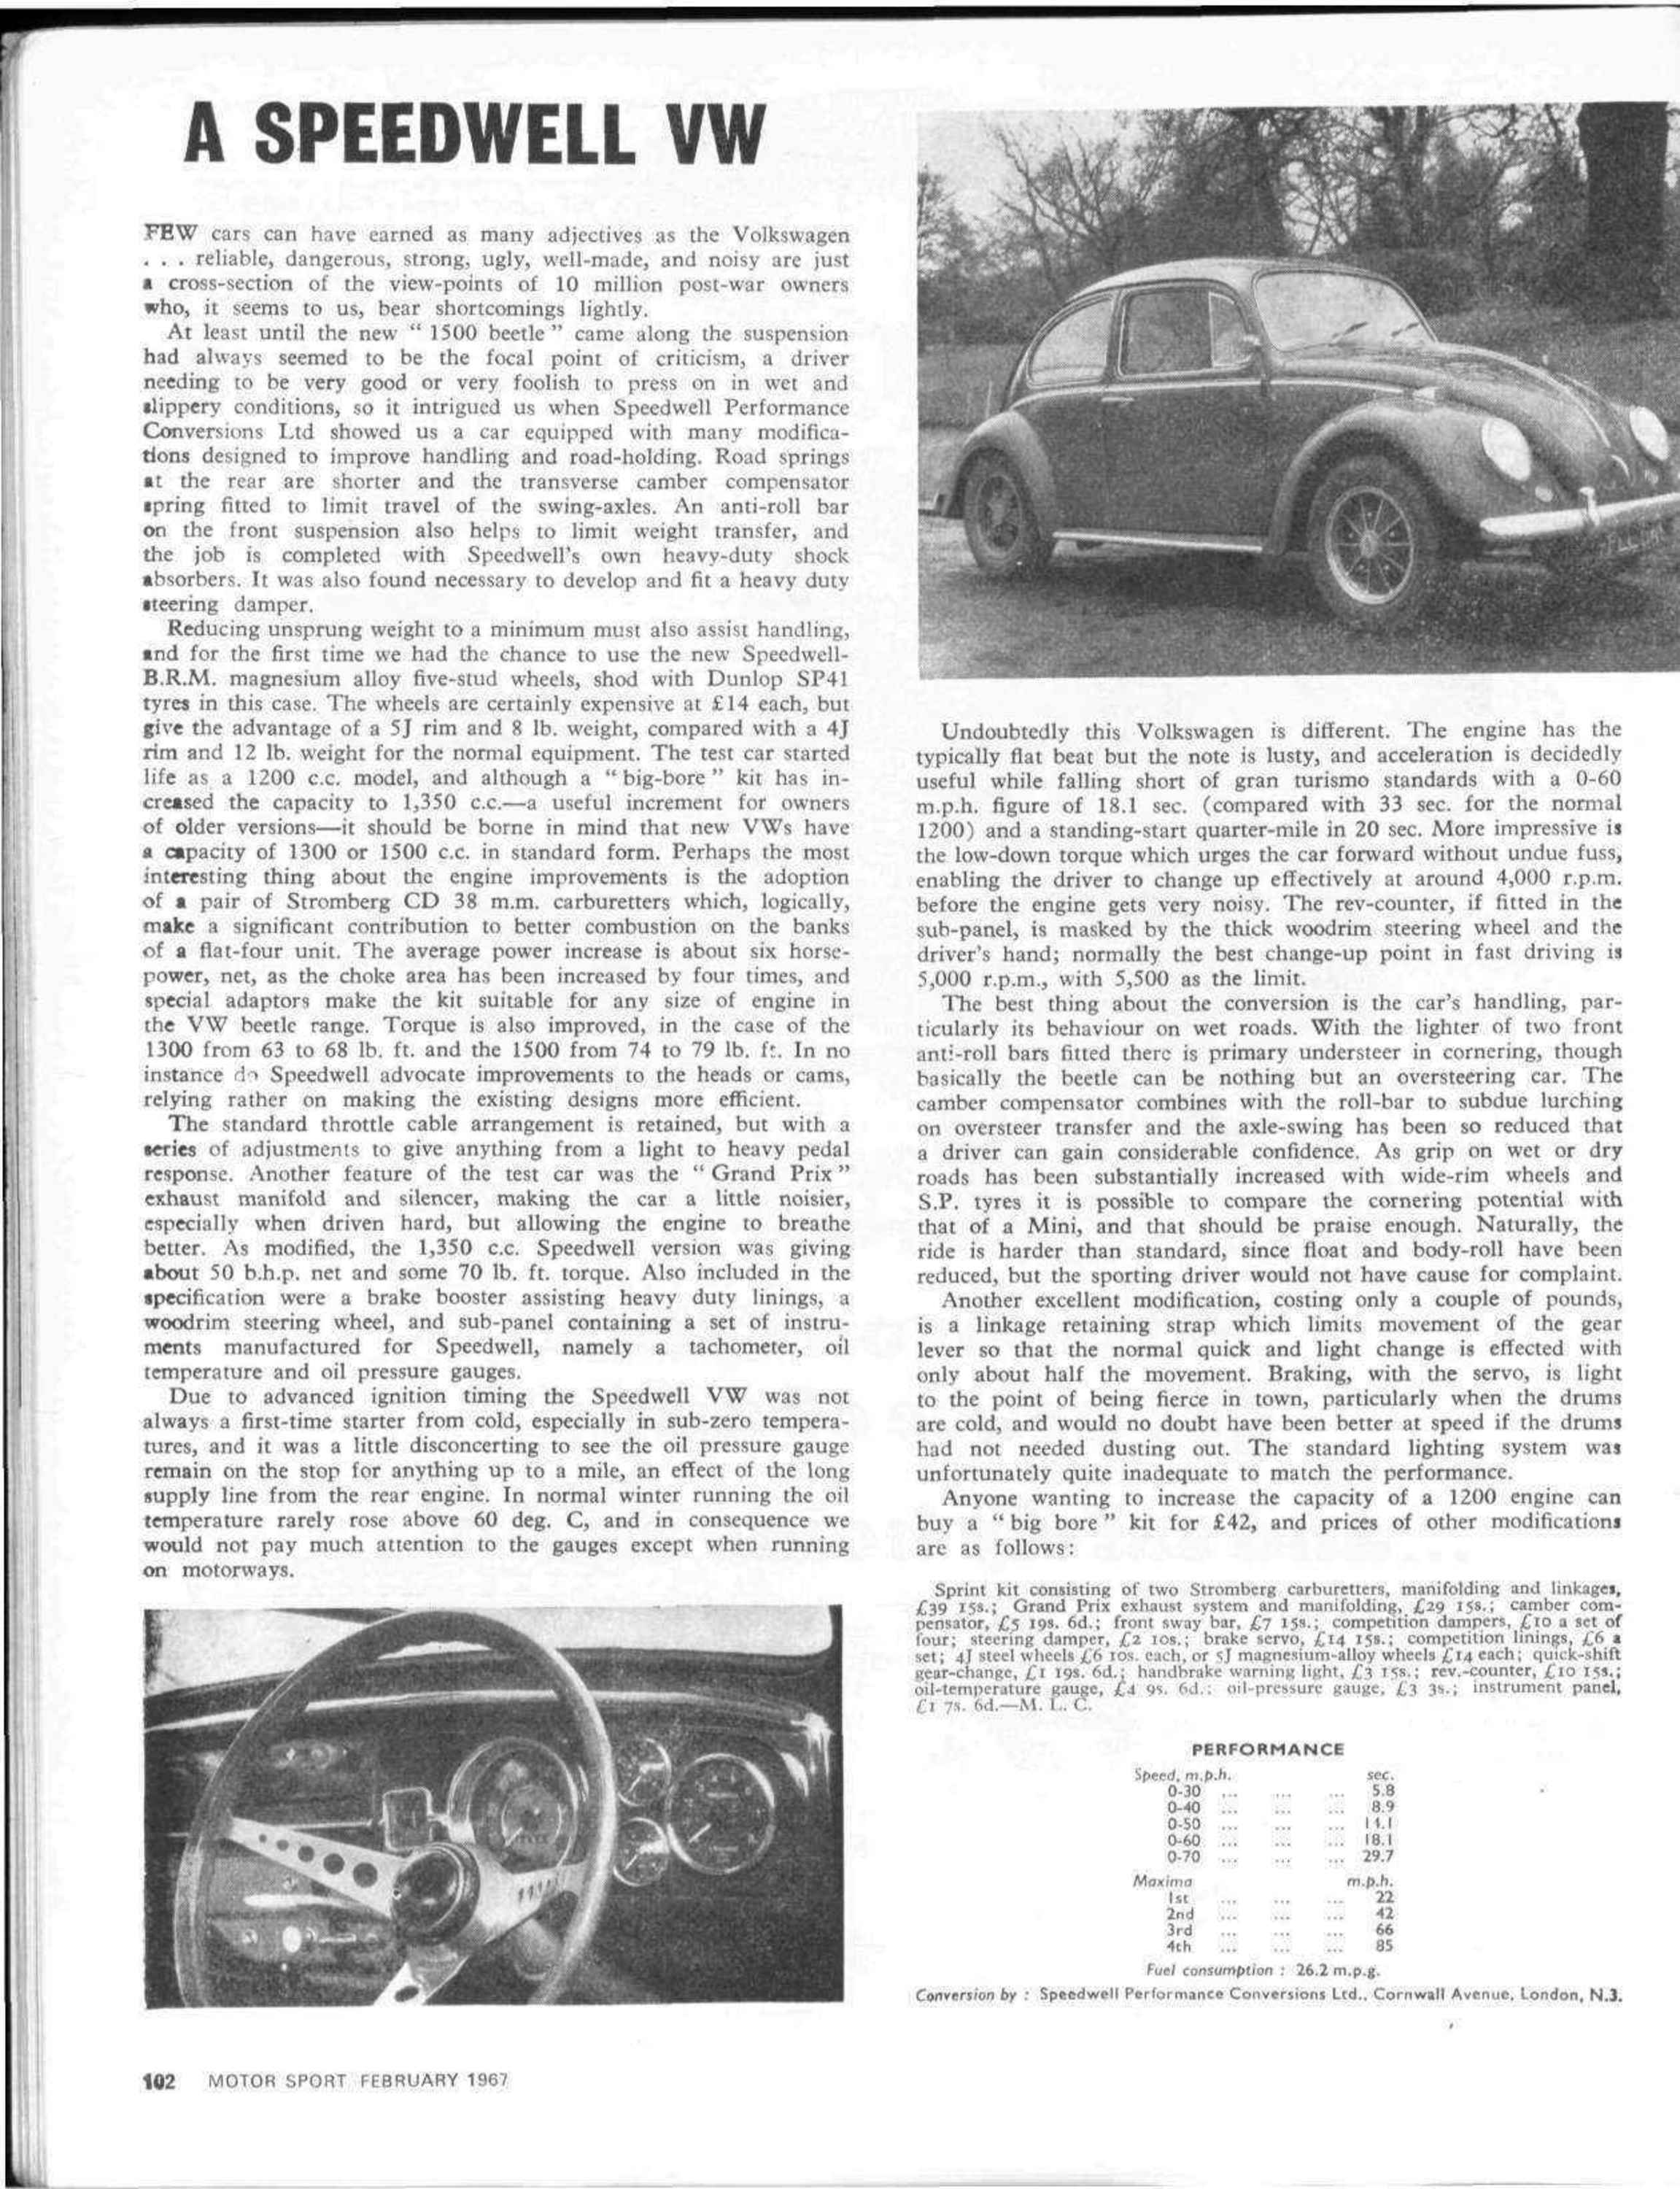 A Speedwell VW | Motor Sport Magazine Archive